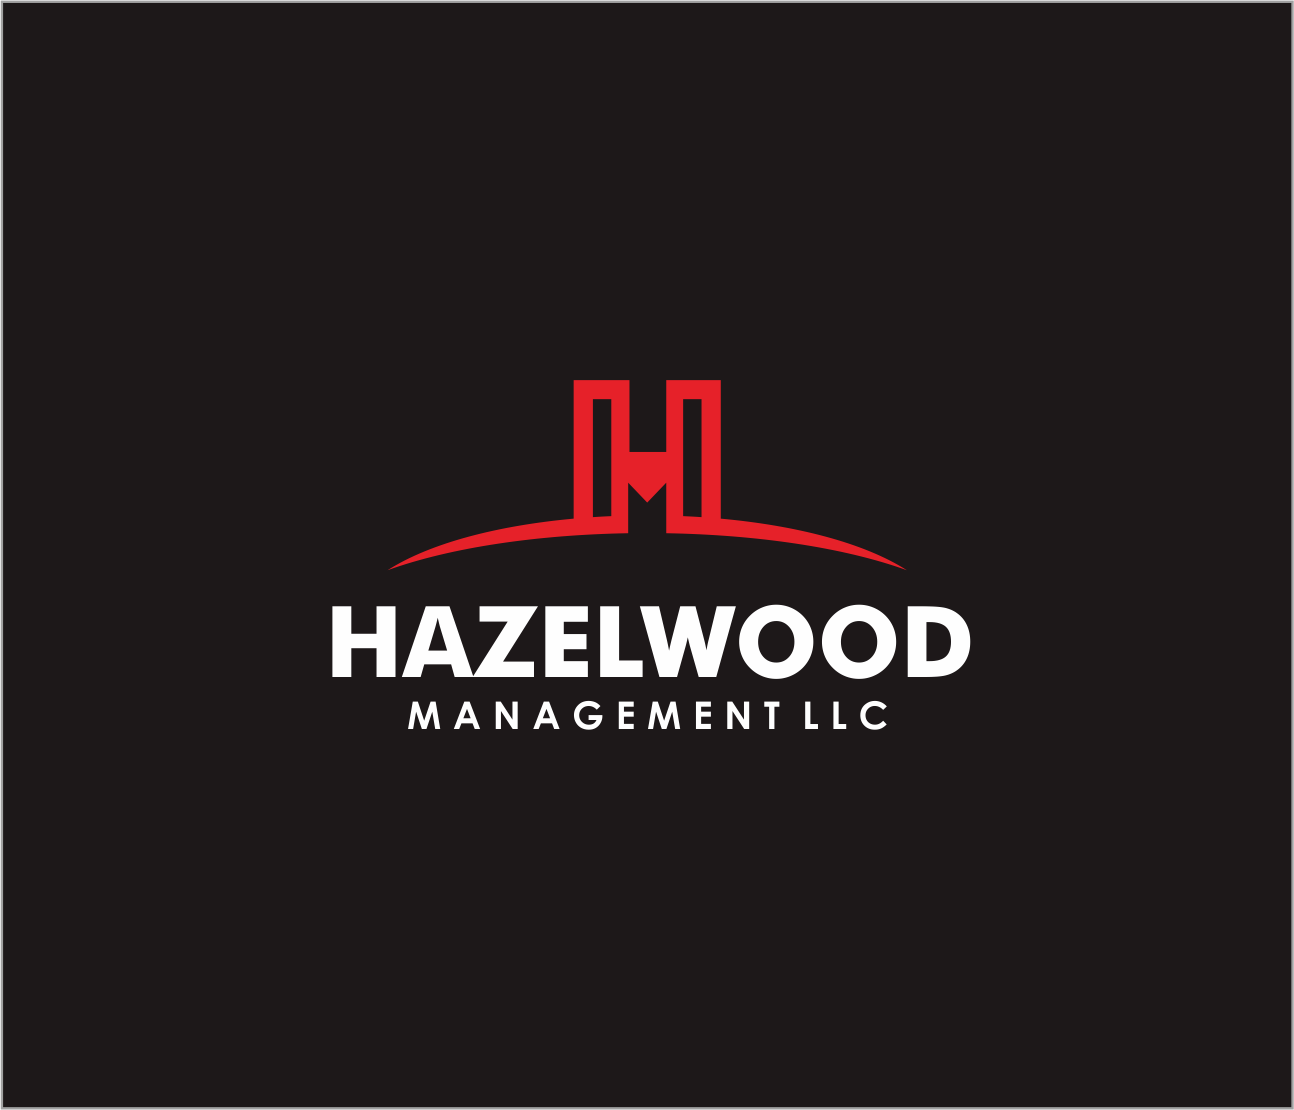 Logo Design by Armada Jamaluddin - Entry No. 68 in the Logo Design Contest Hazelwood Management LLC Logo Design.